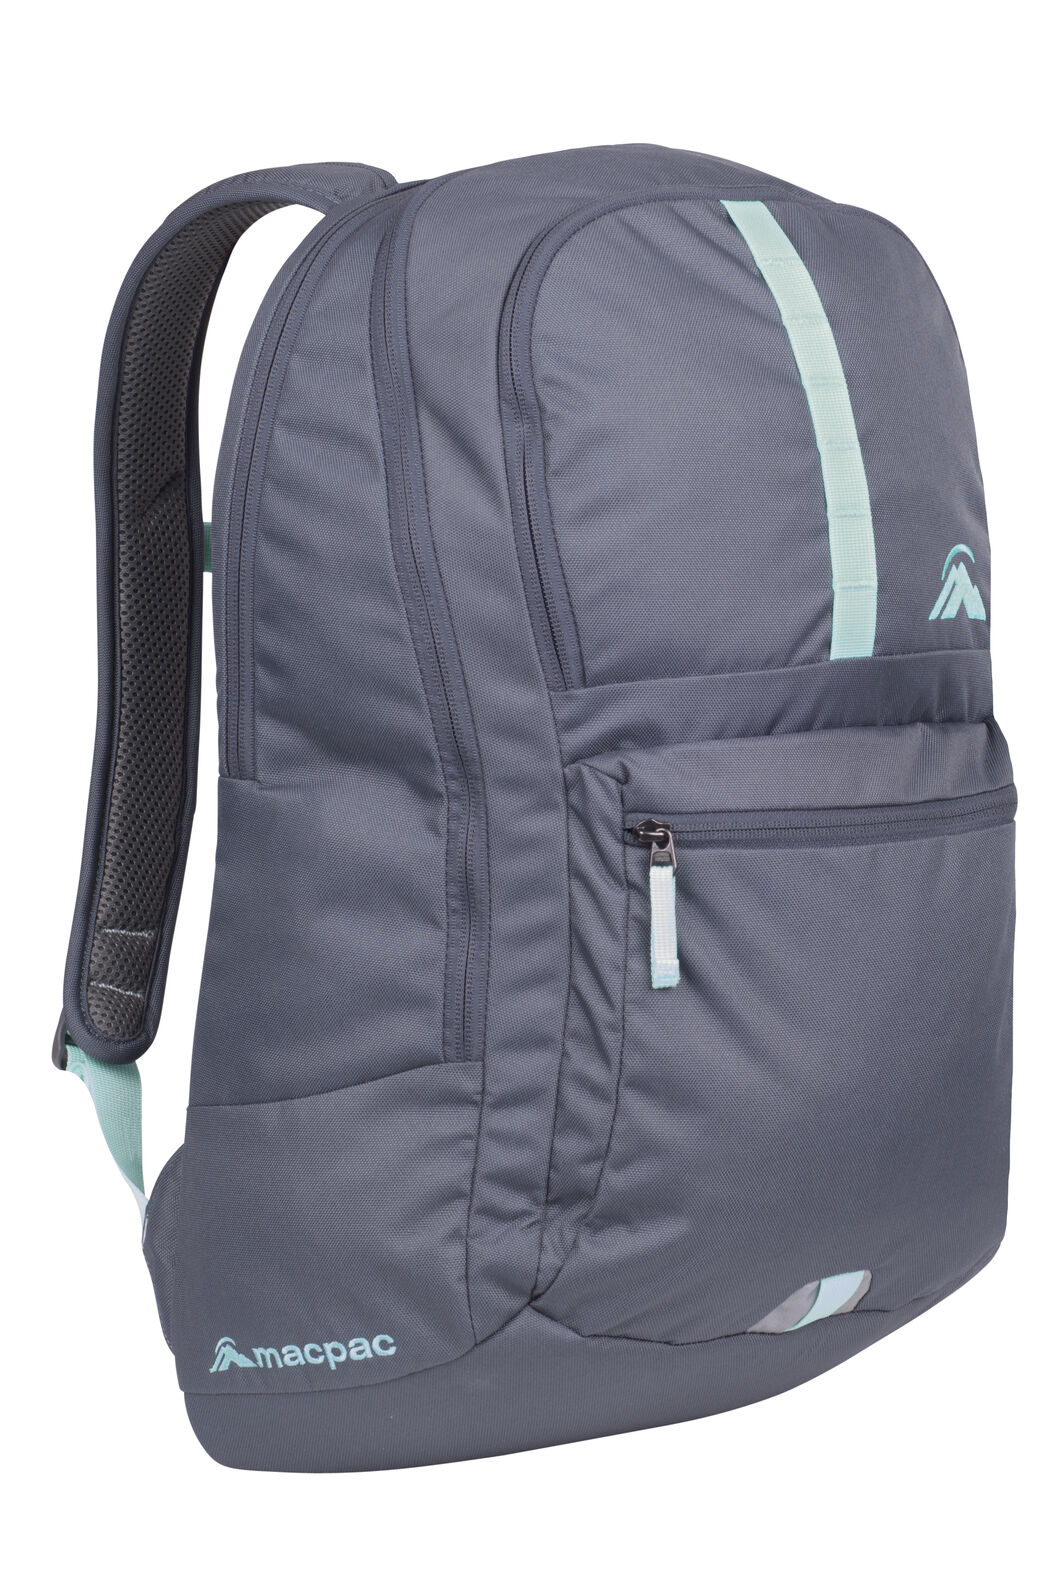 Macpac Campus 24L Day Pack, Turbulence/Ice Green, hi-res